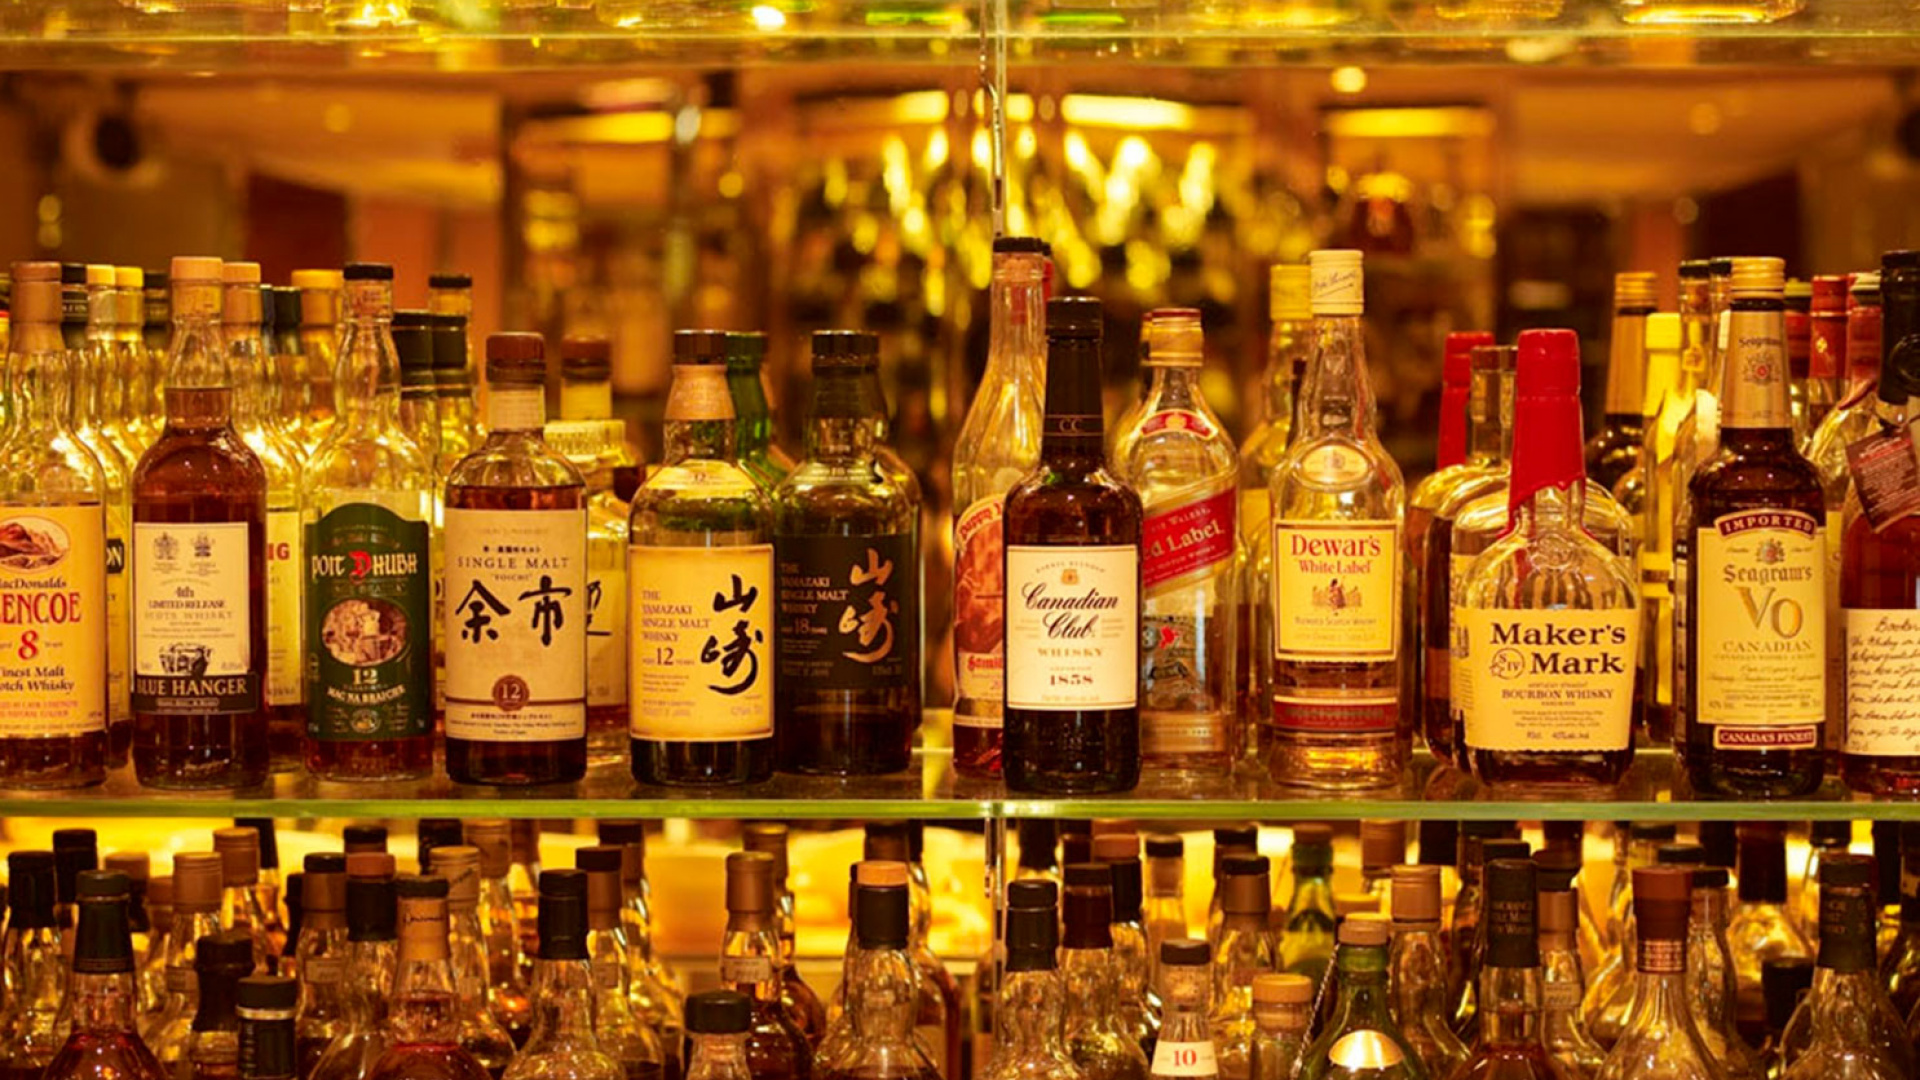 Behind the bar at The Athenaeum